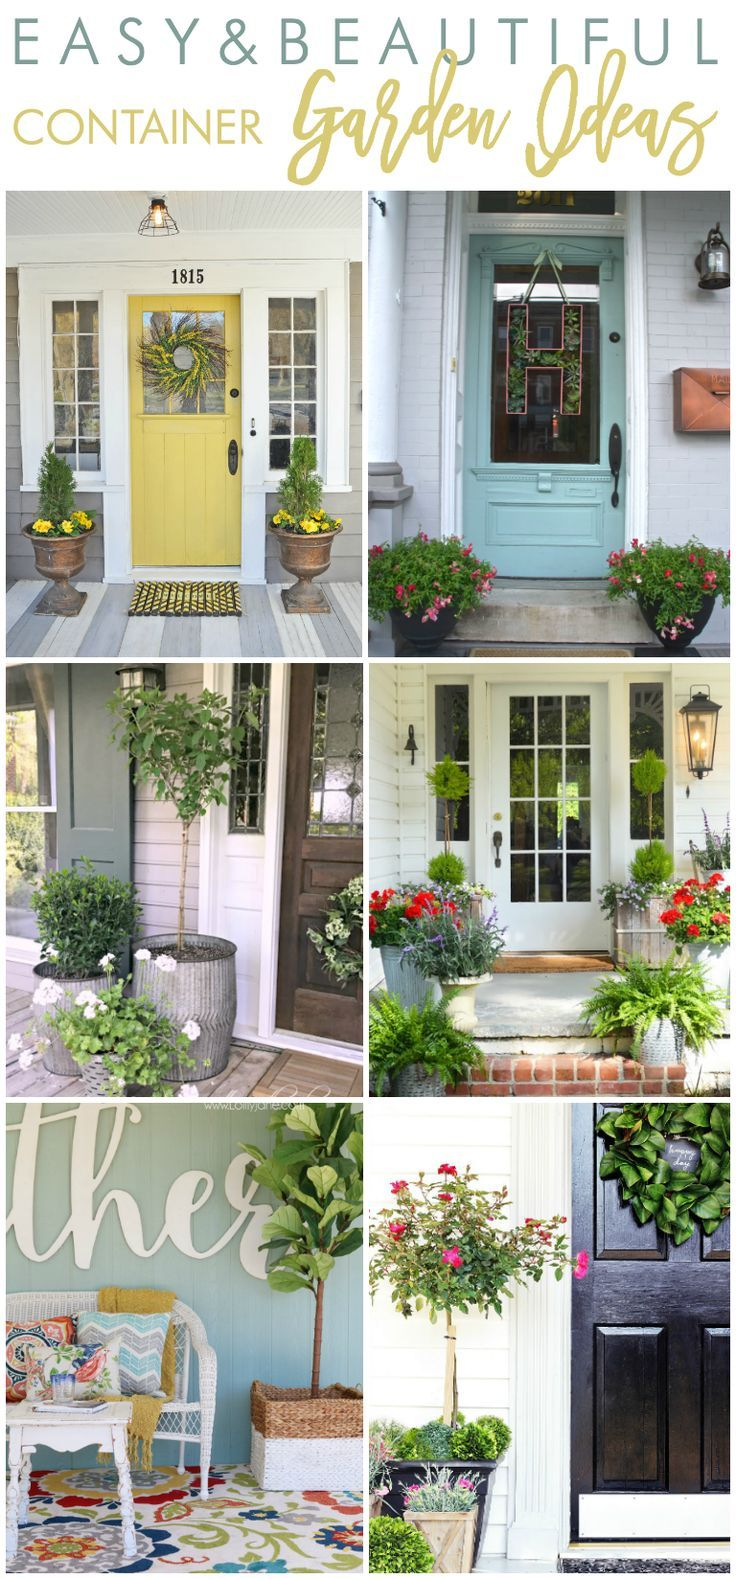 Wondering What Plants And Flowers To Choose Style Your Front Porch Container Planters This Year Here Are Some Easy Beautiful Garden Ideas